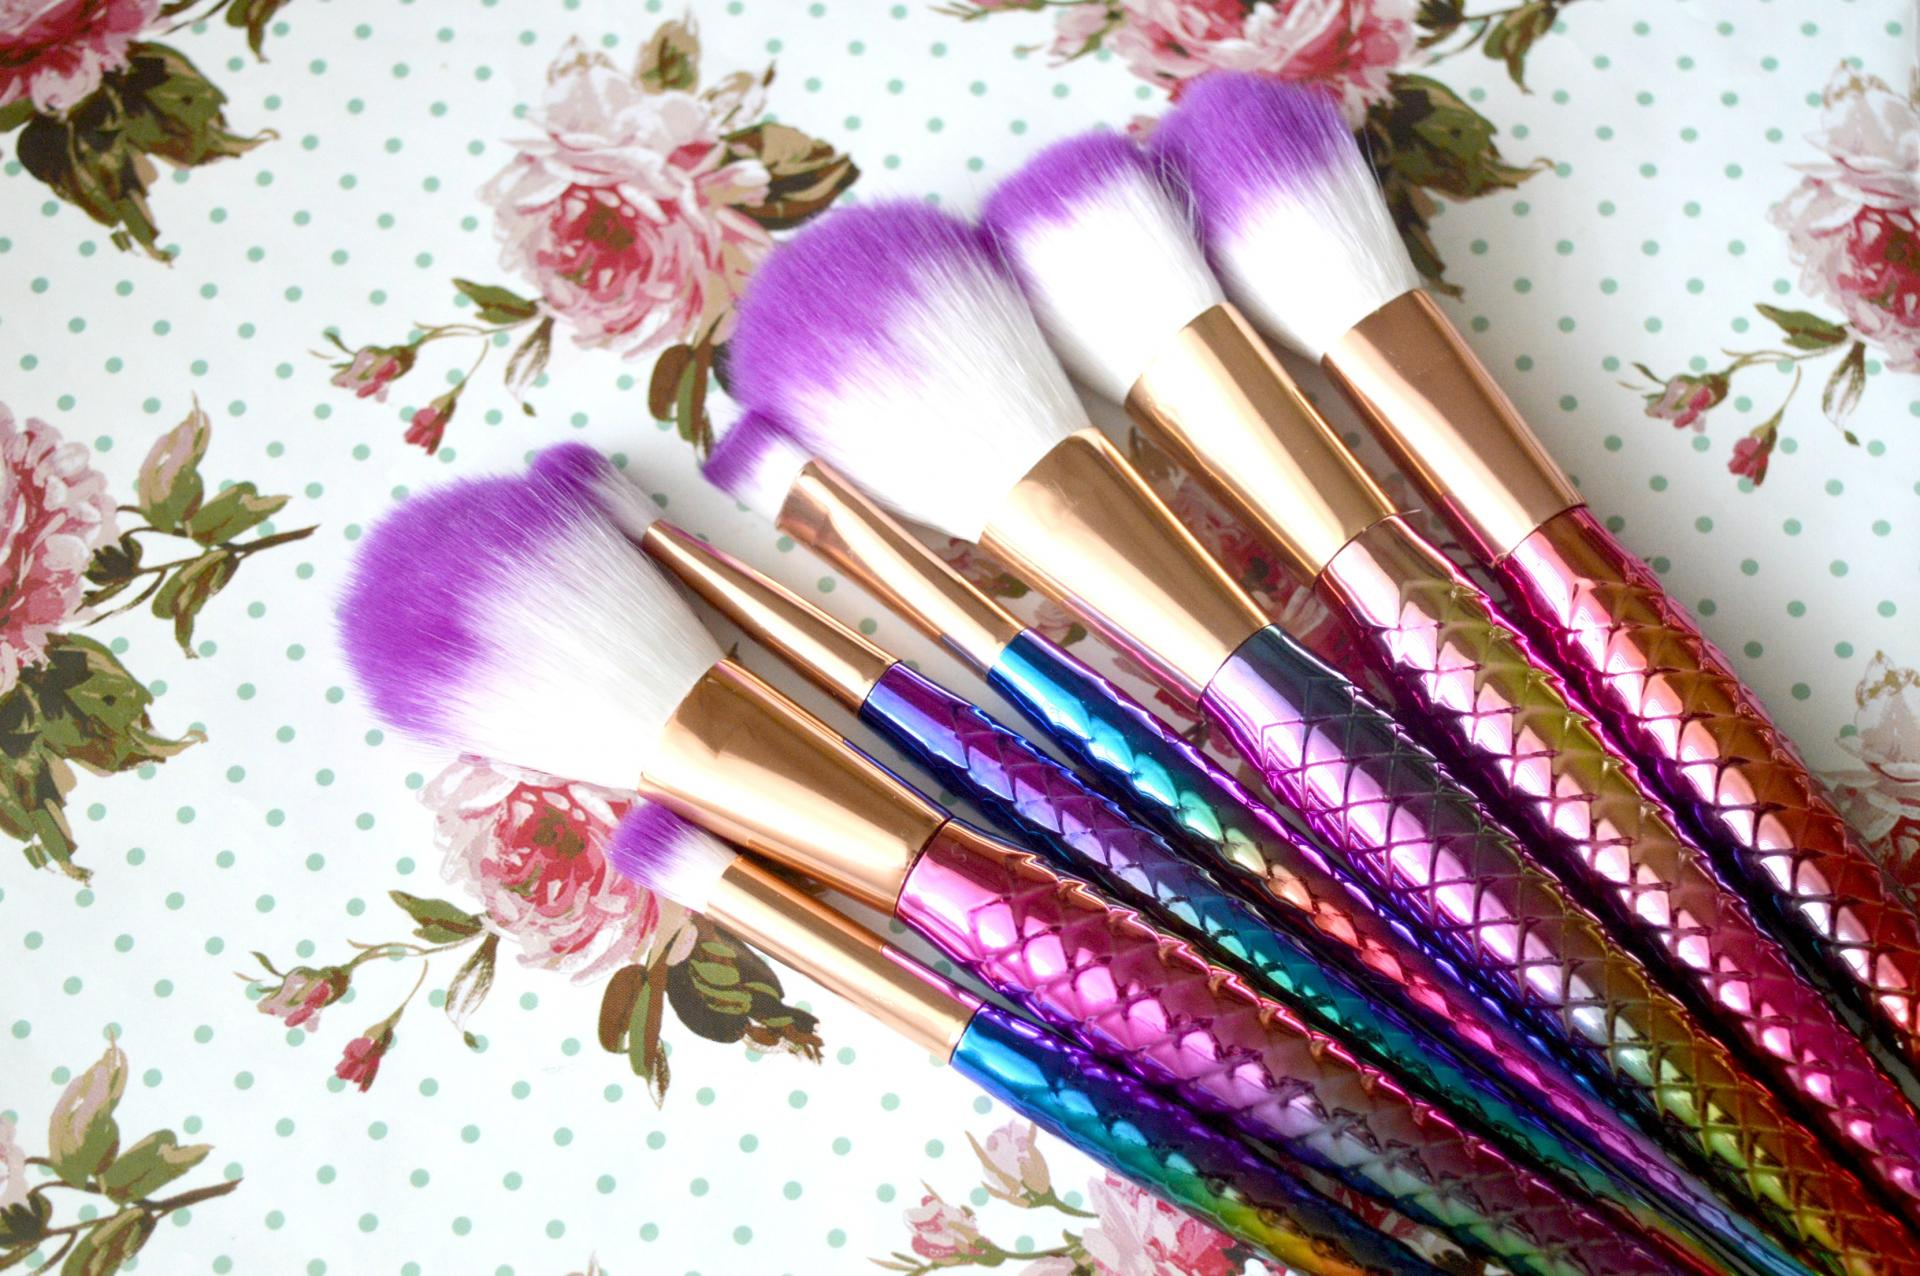 The Most Beautiful Affordable Mermaid Makeup Brushes